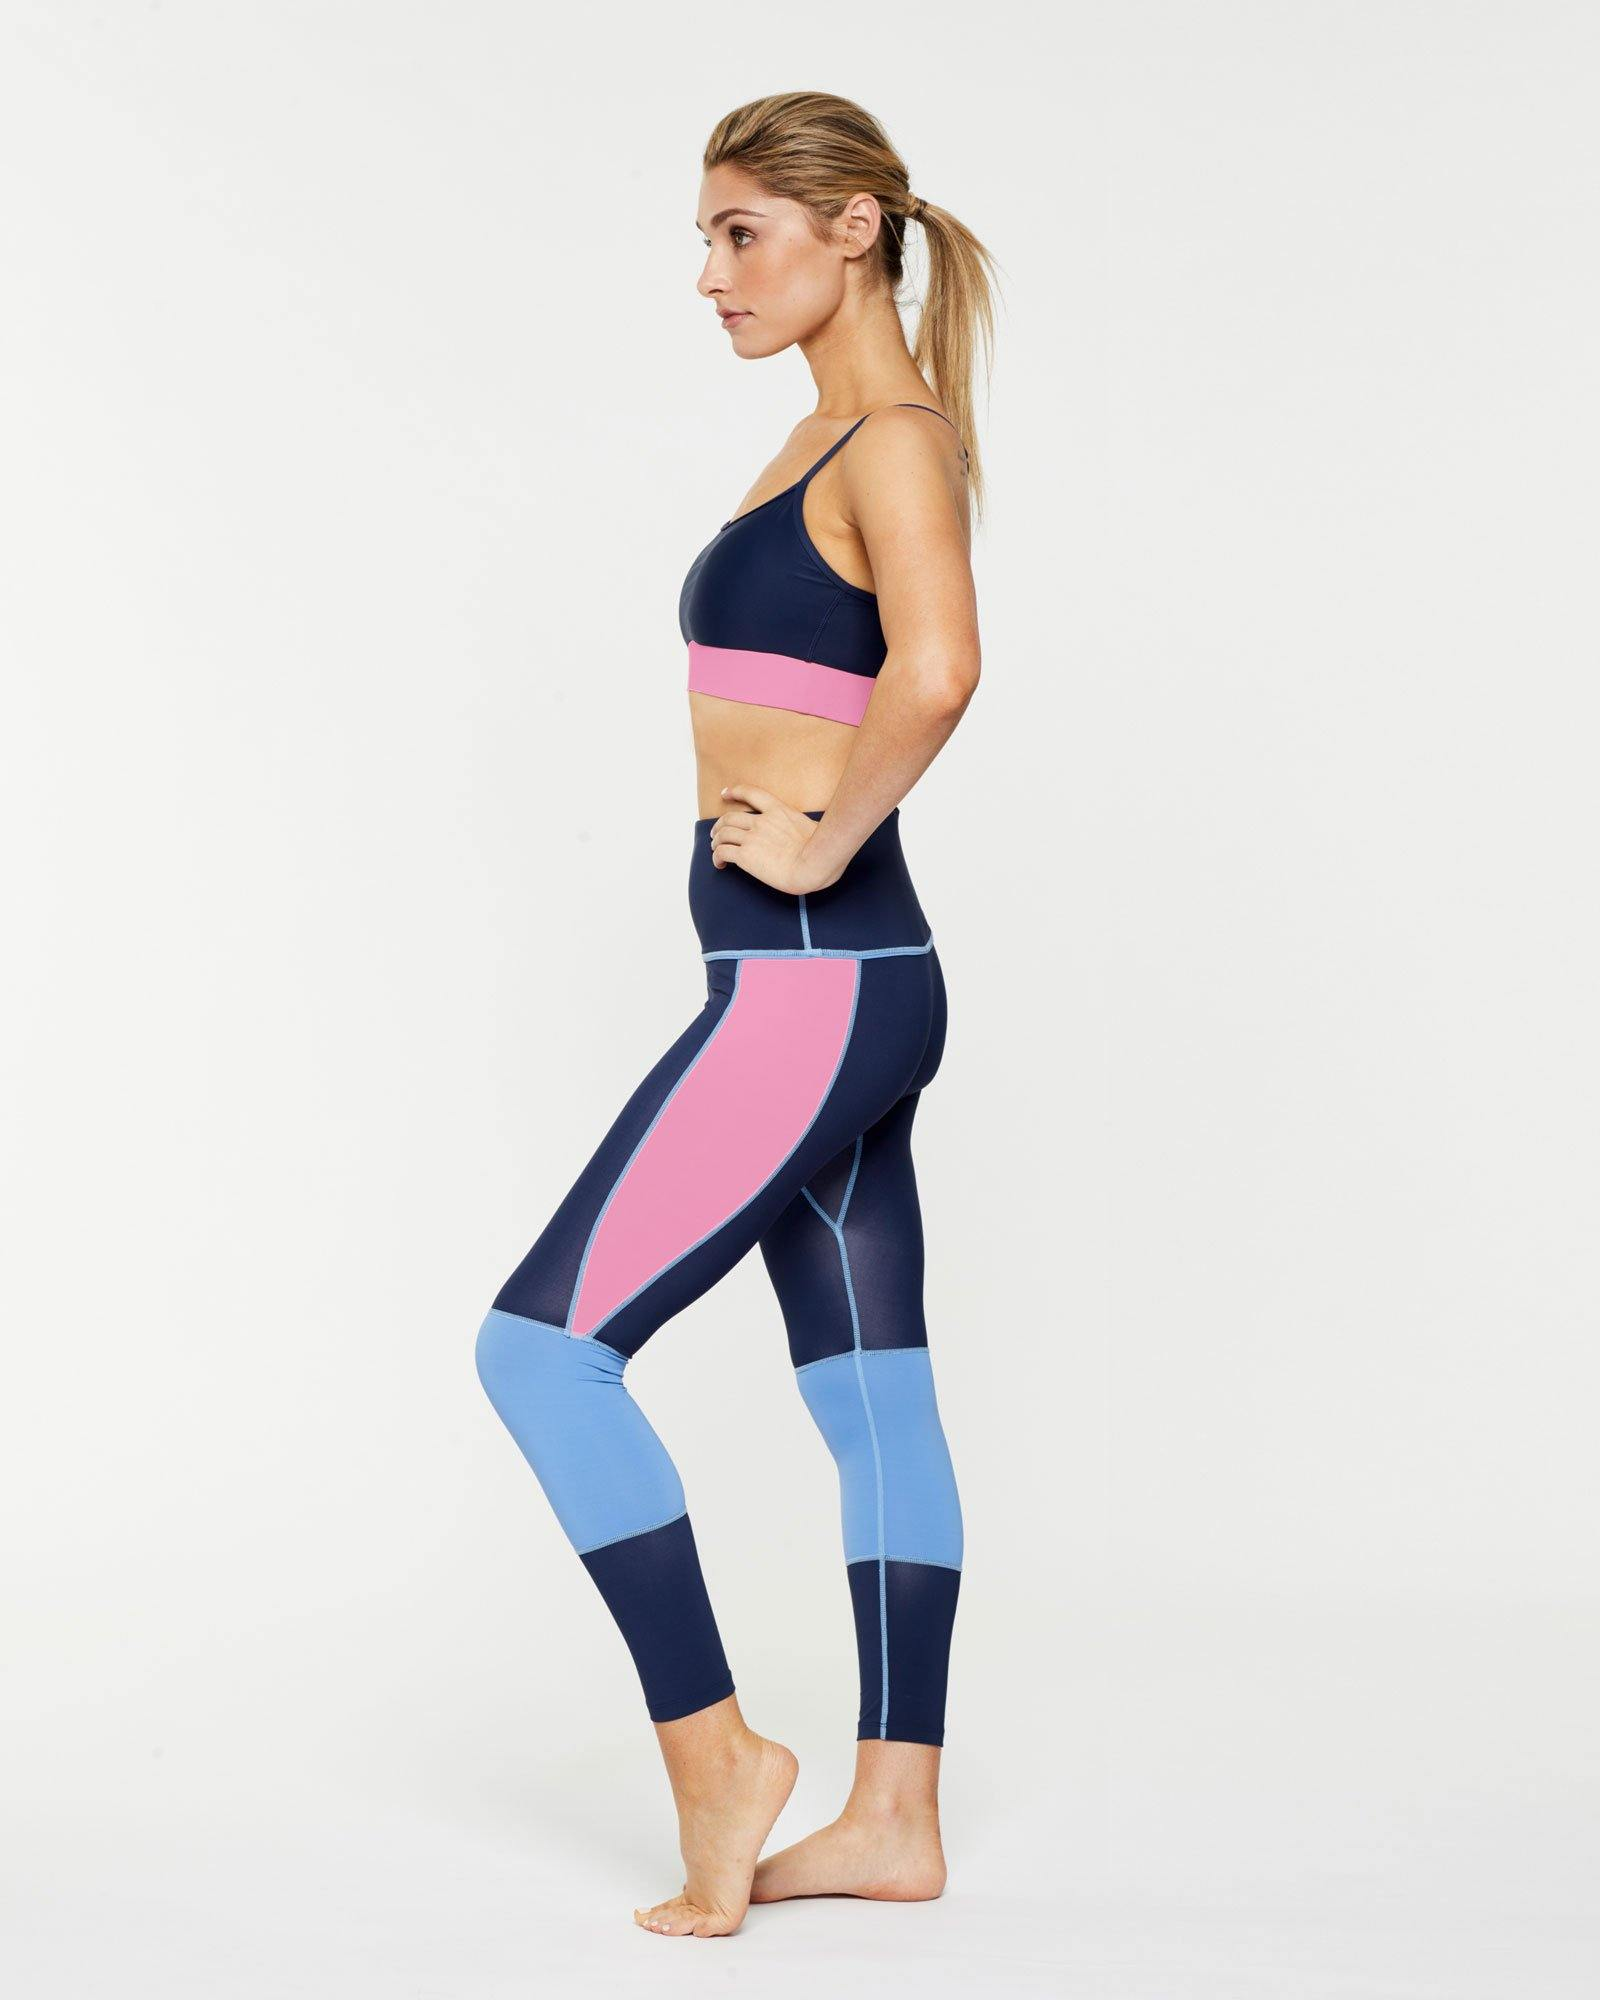 Femininely GRACILIS 7/8 HIGH WAISTED LEGGING Navy Blue WITH CONTRAST PANELS Sky blue and peony pink work with Infraspinatus active bra top, side VIEW, for pilates, barre, yoga, dance, gym-workouts